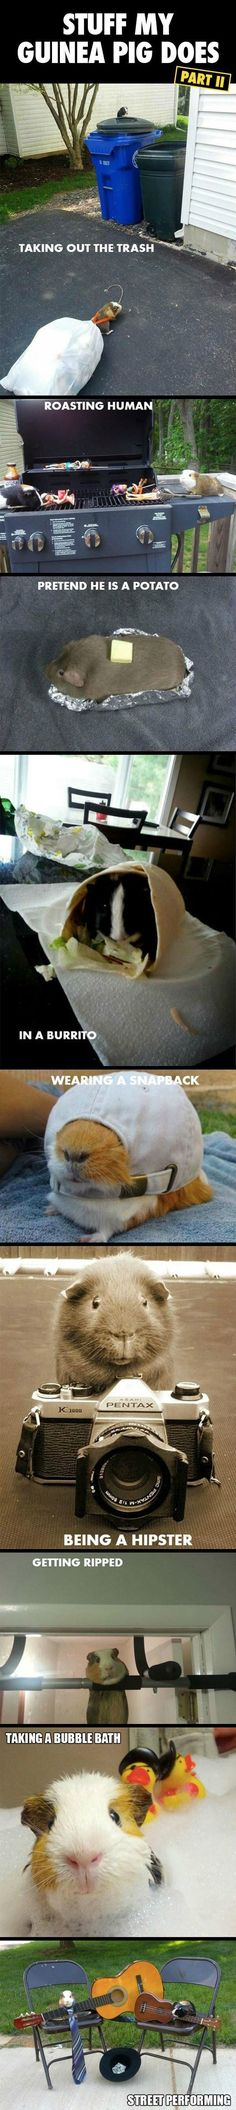 Stuff my guinea pig does. ...for some reason this really makes me laugh.